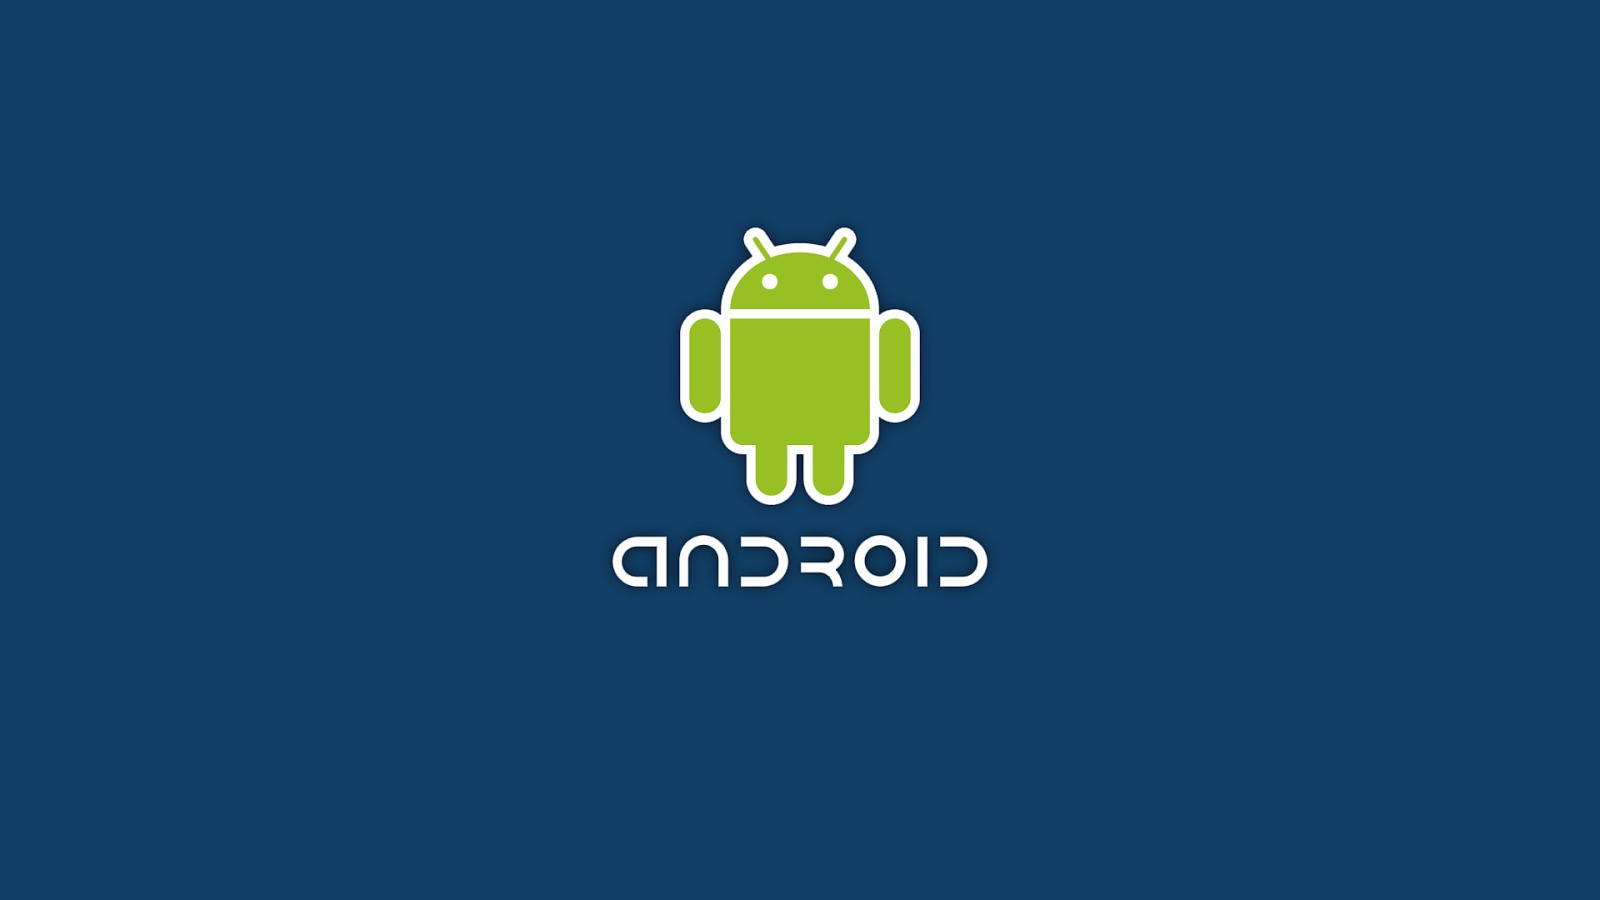 Hd Wallpapers For Android: 1080p Wallpapers: Android